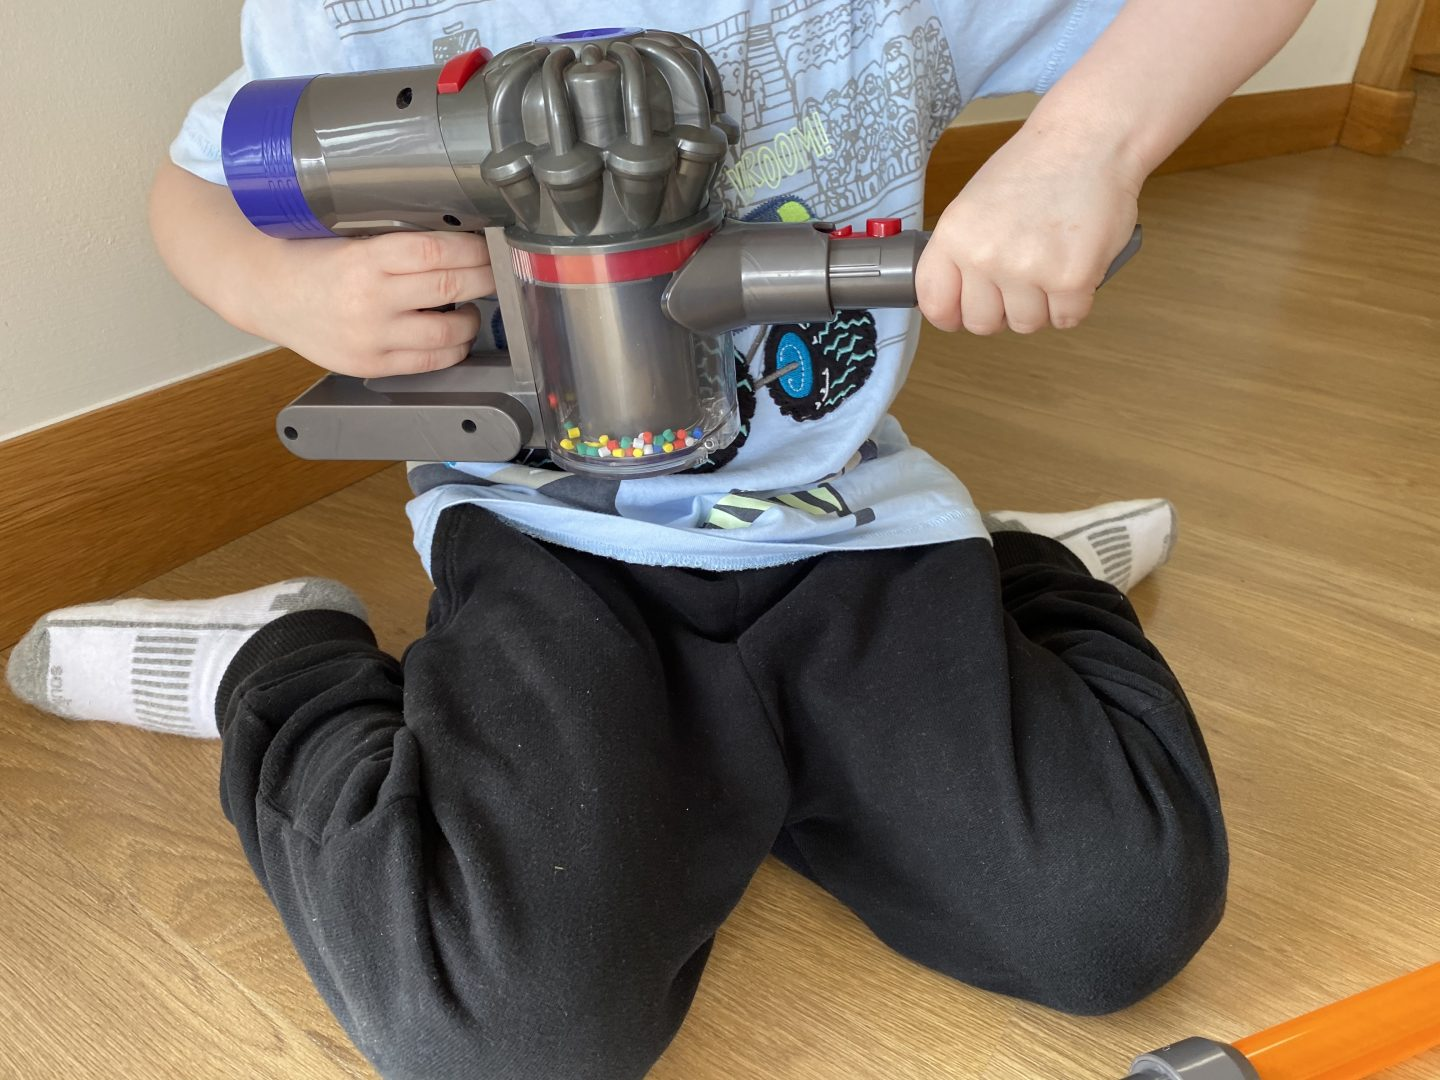 A boy playing with a toy vacuum cleaner